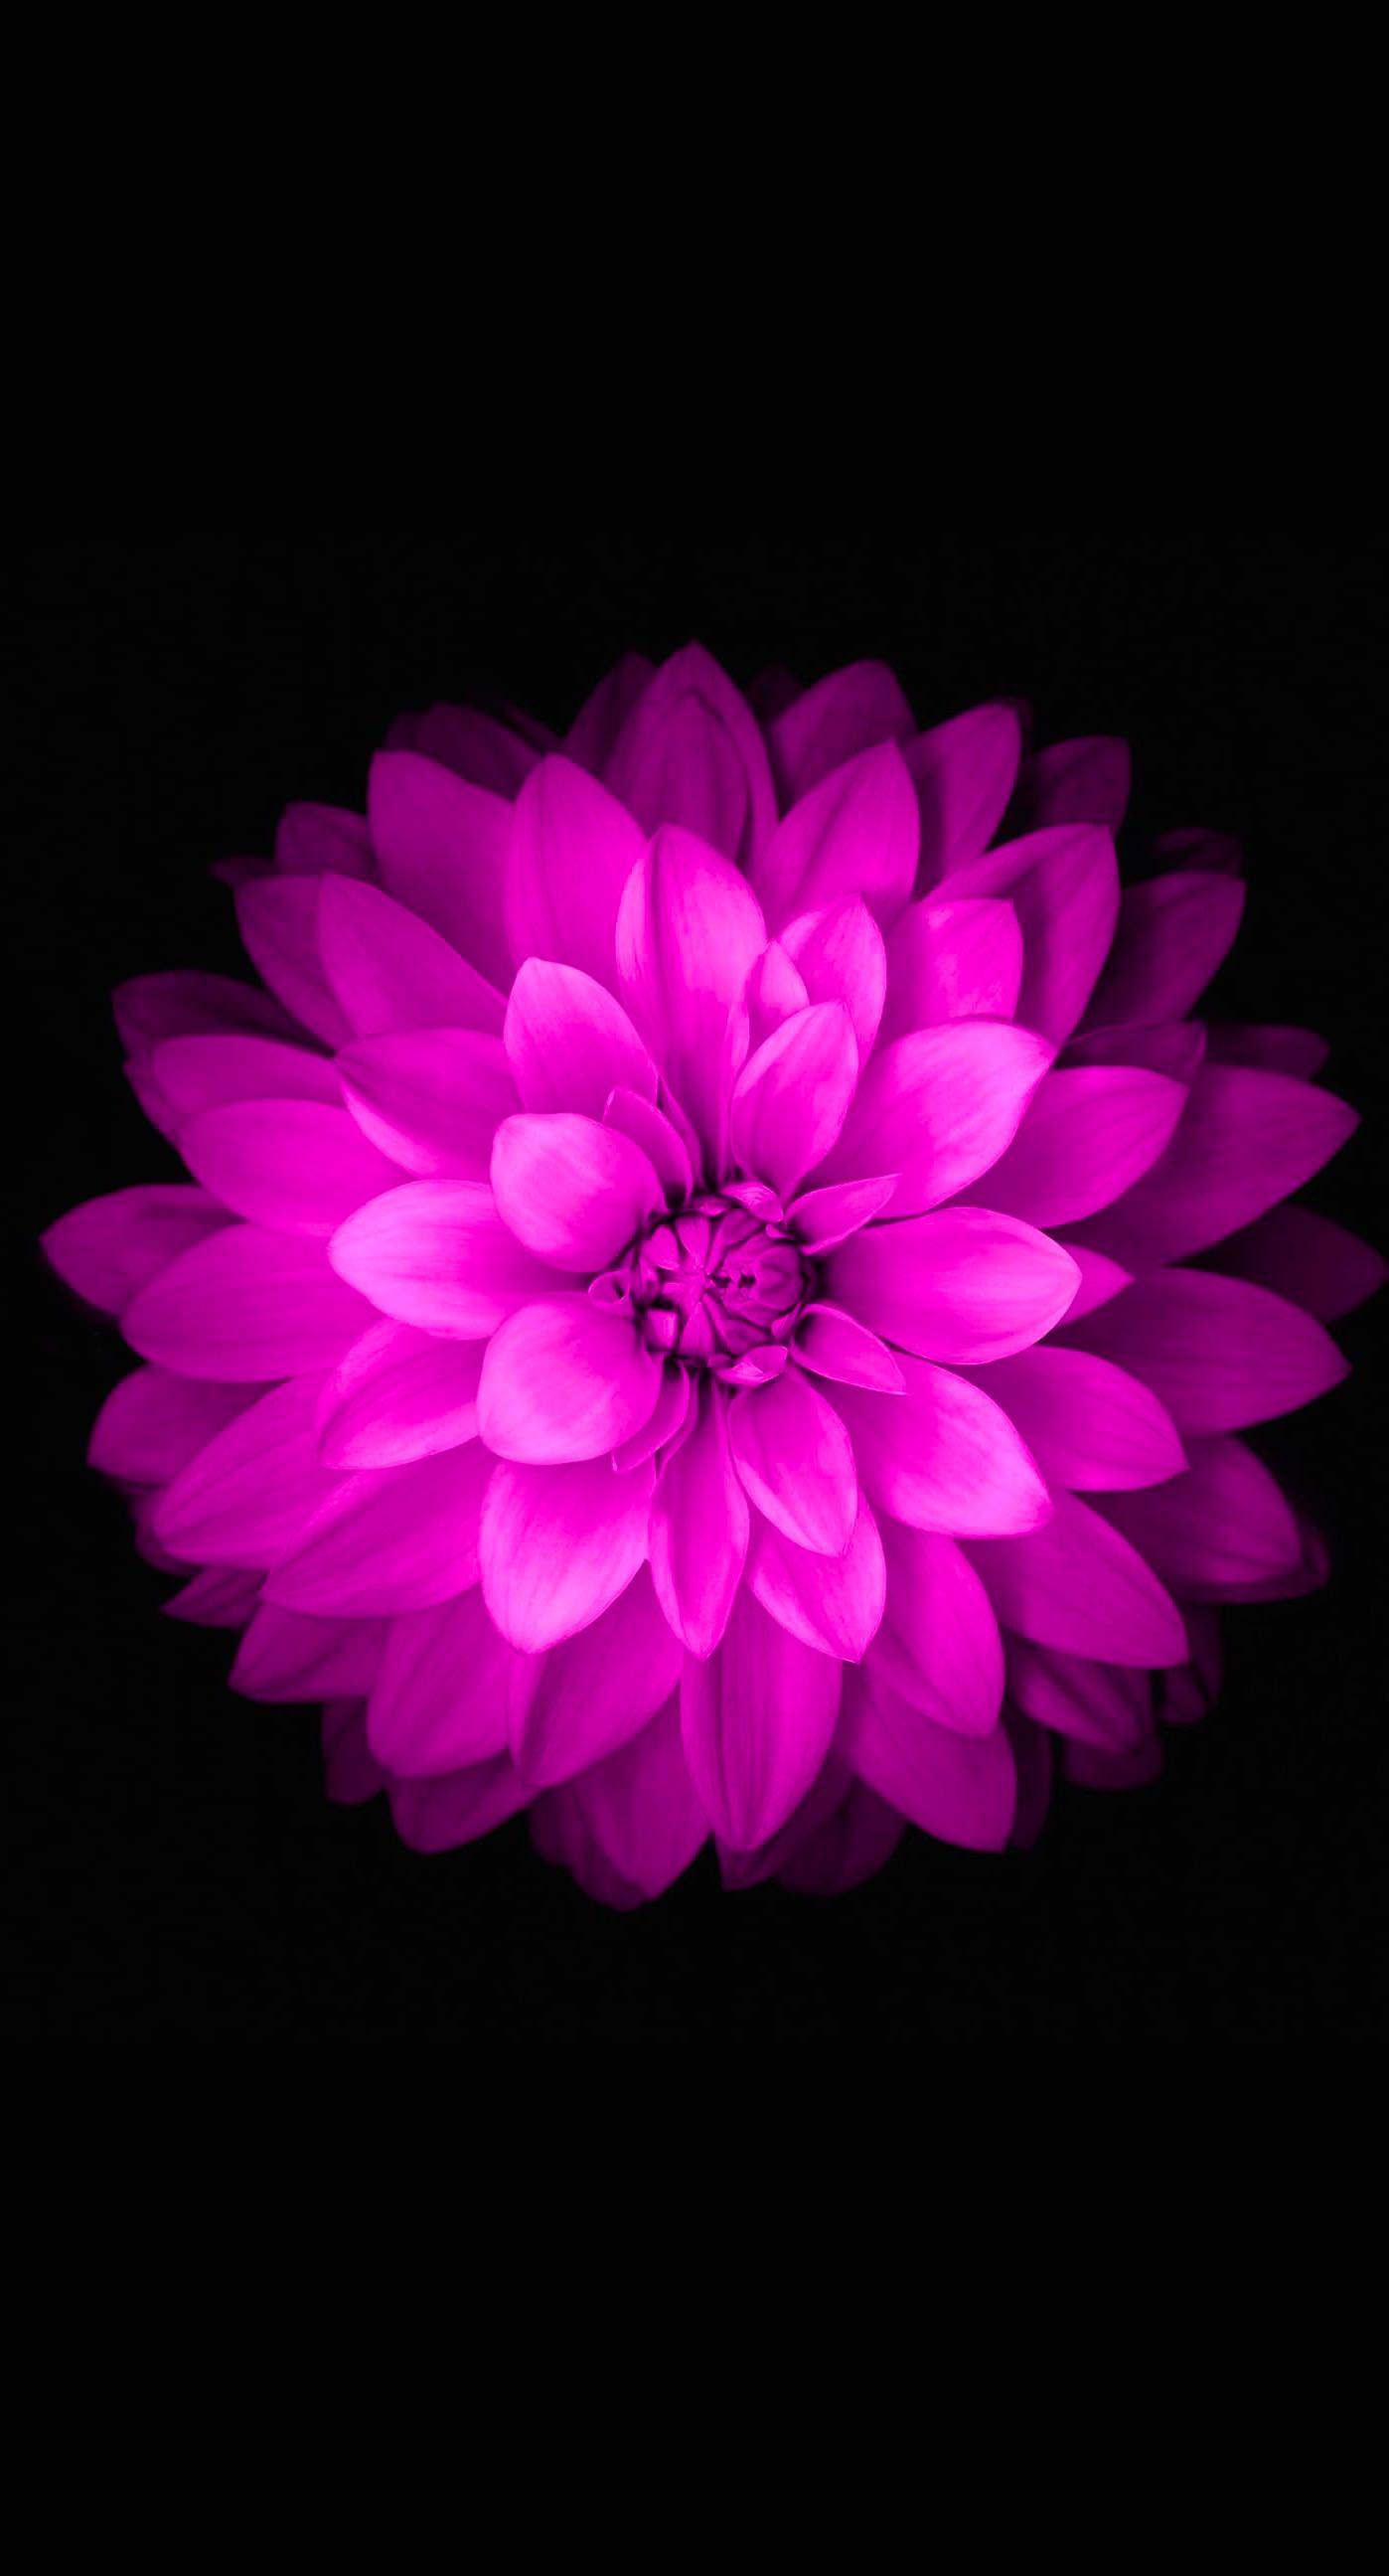 Purple flower wallpaper for iphone wallpapersafari - Iphone 6 flower wallpaper ...